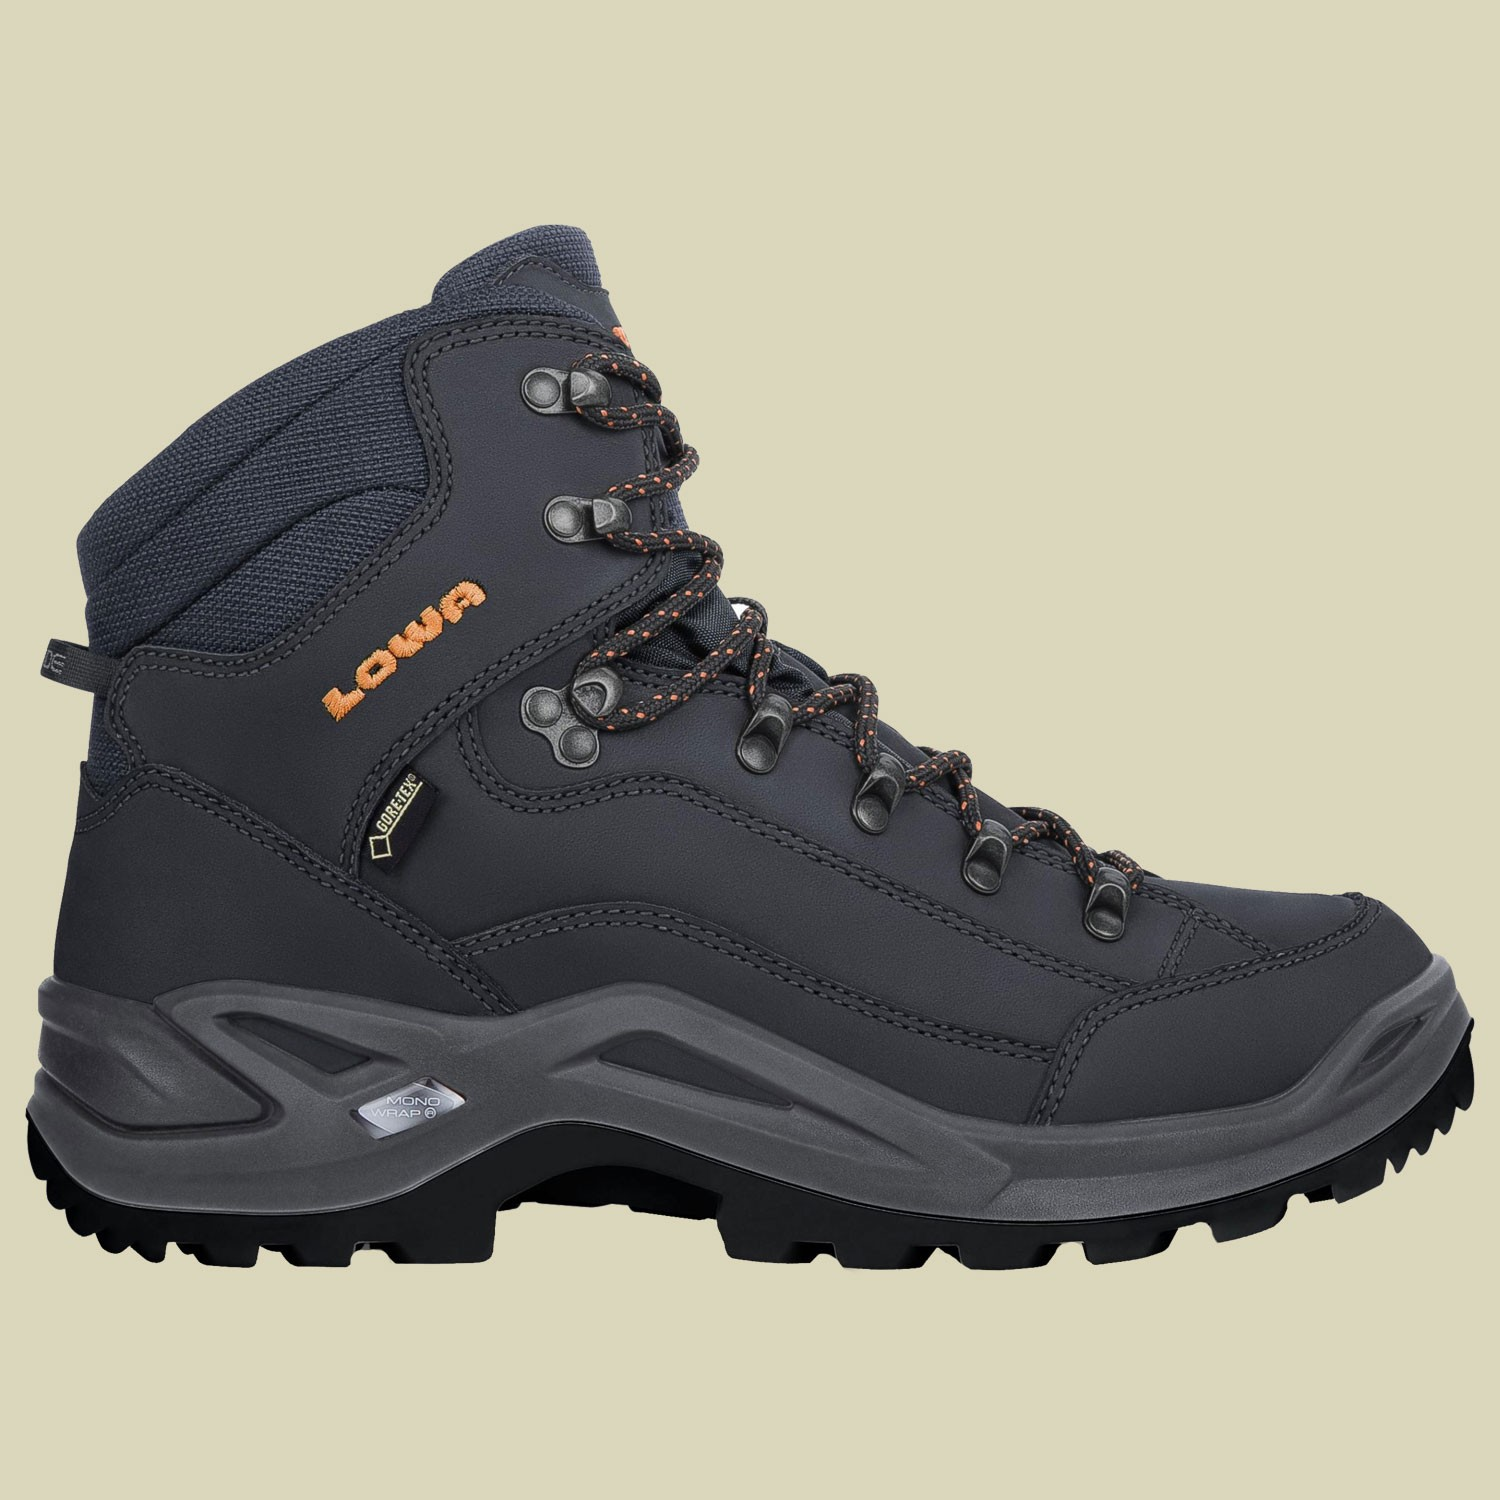 Renegade GTX Mid Men